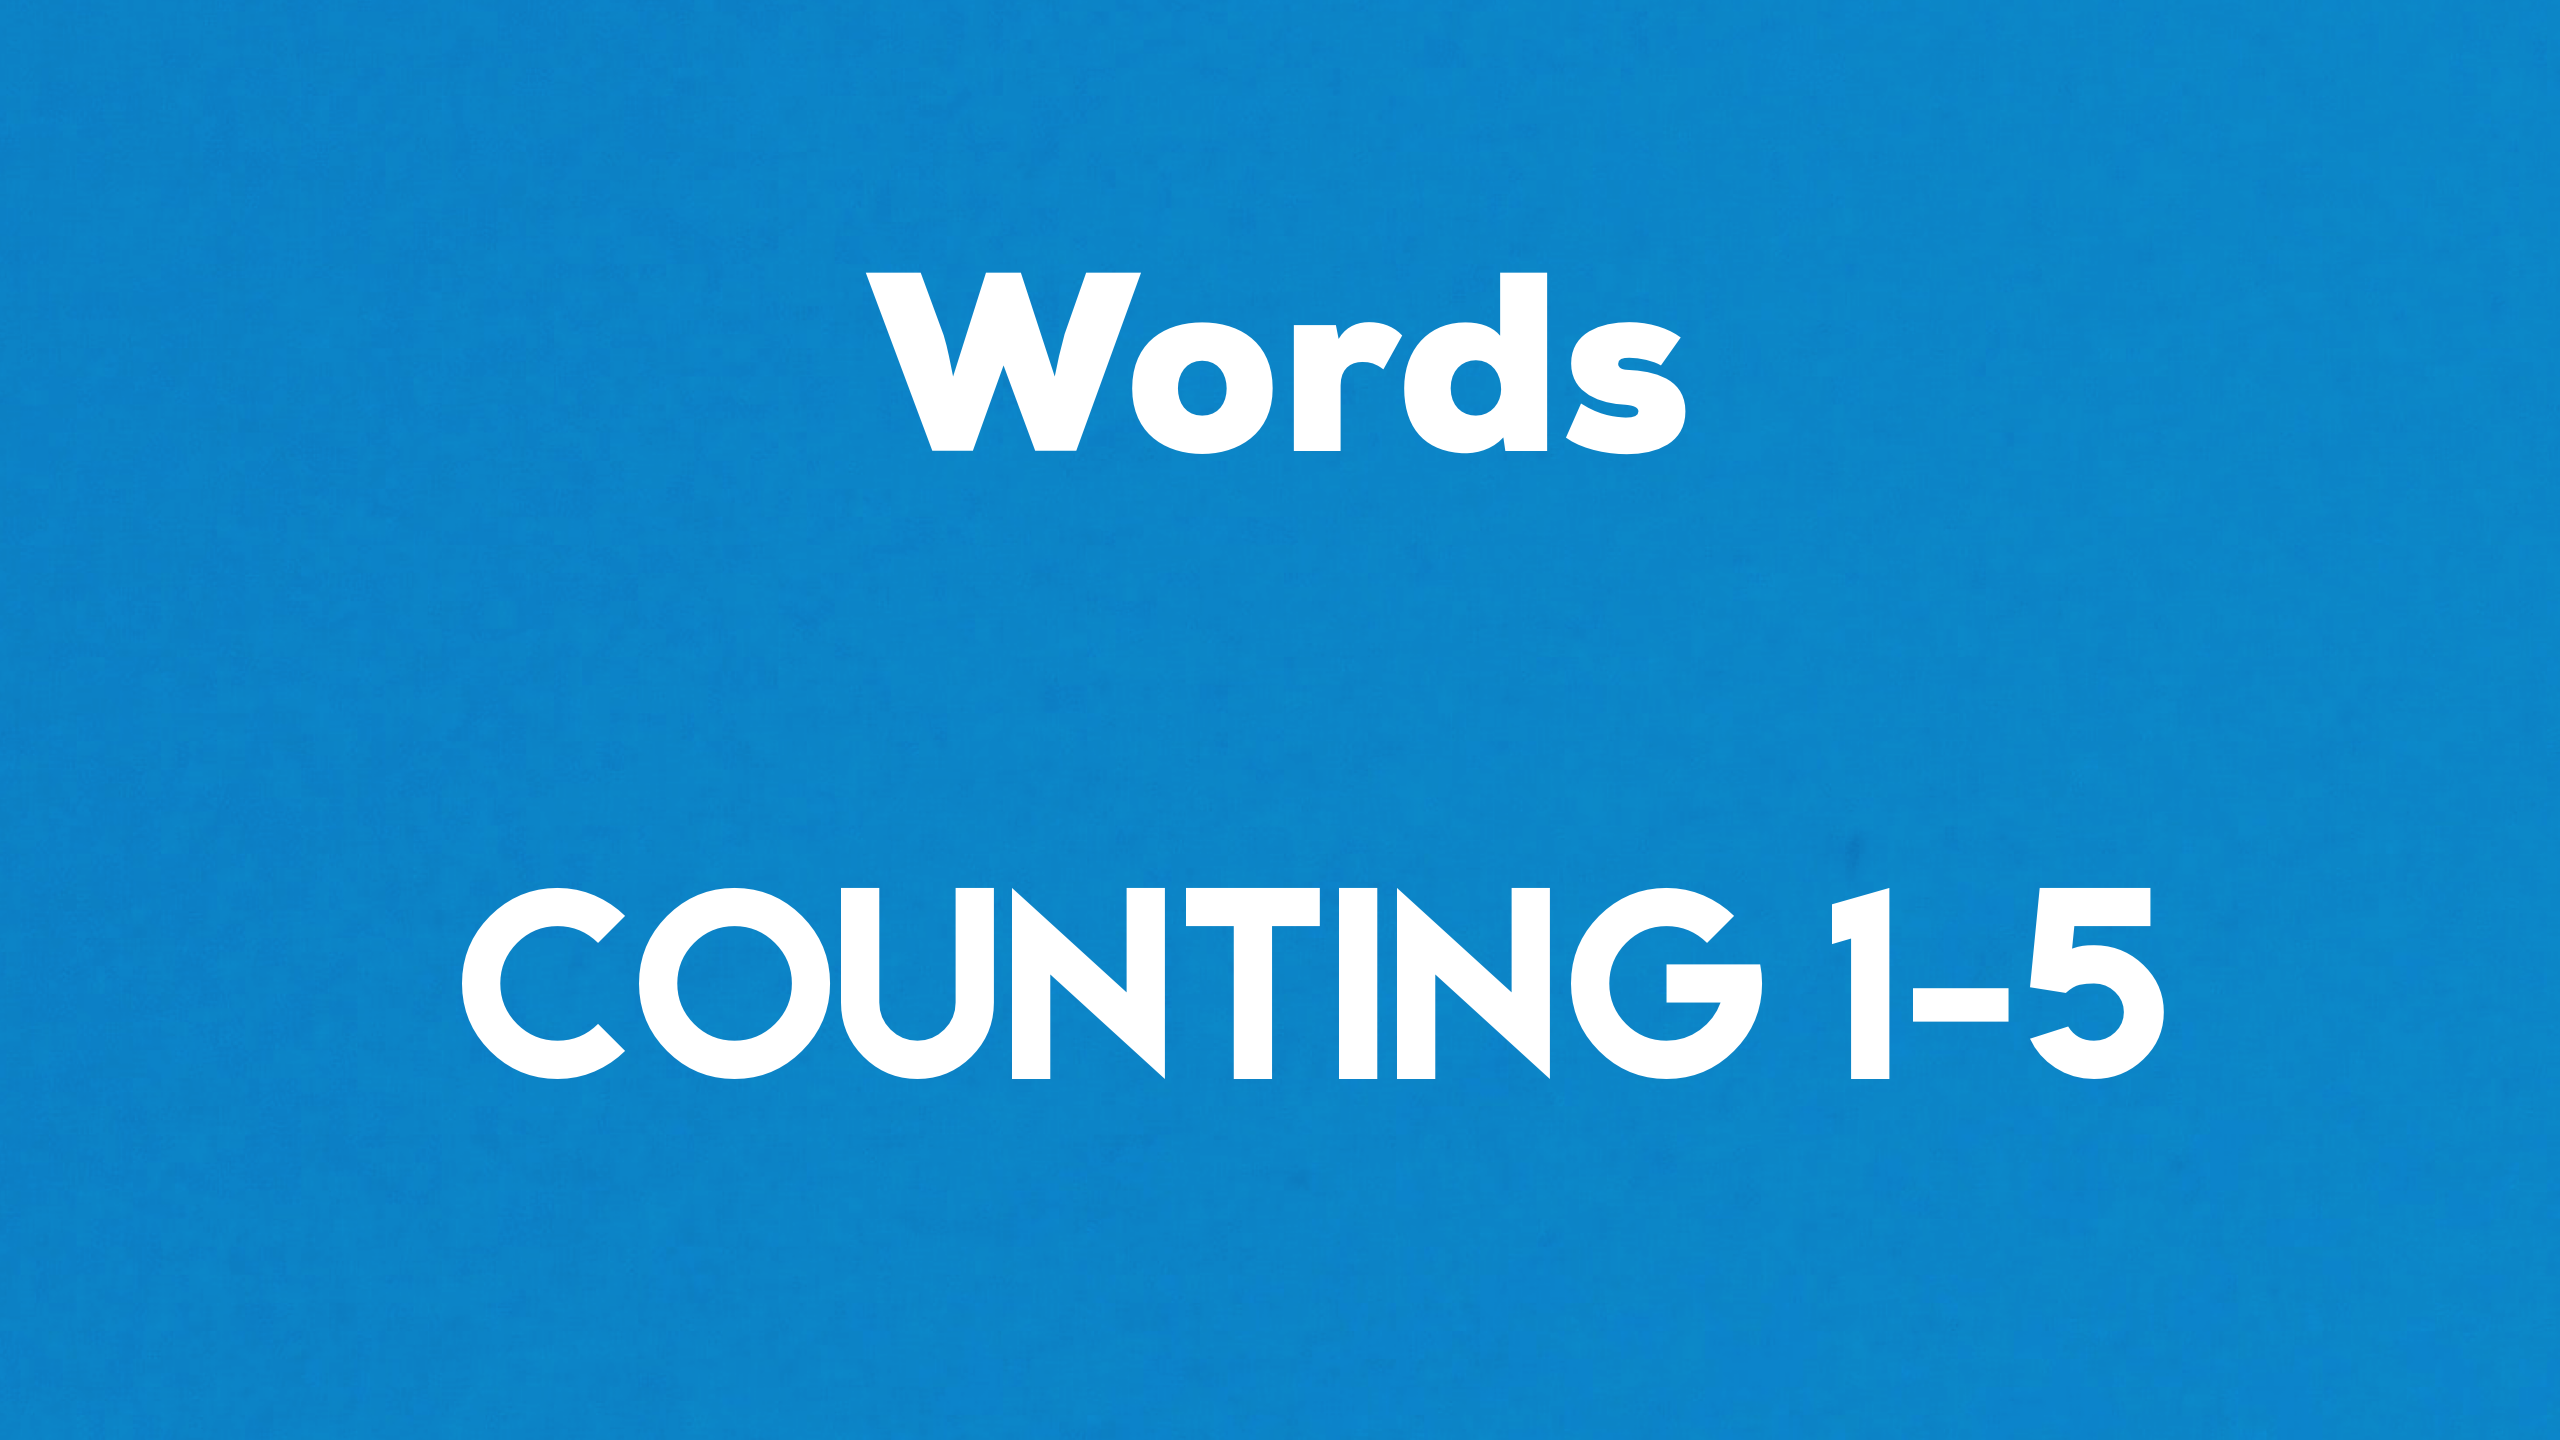 Words Counting 1-5